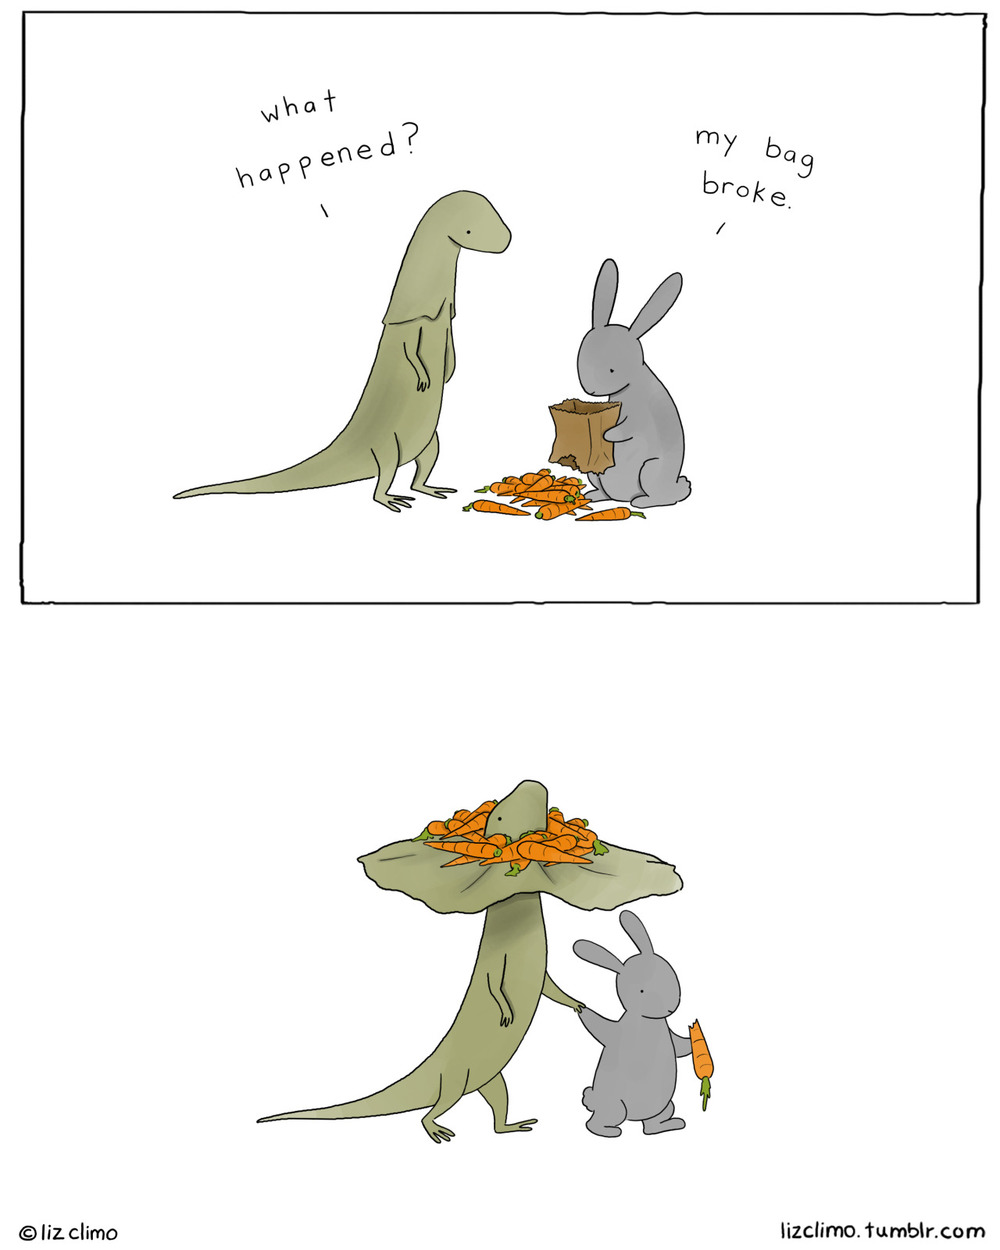 lizclimo: for louie  Really cute. :)